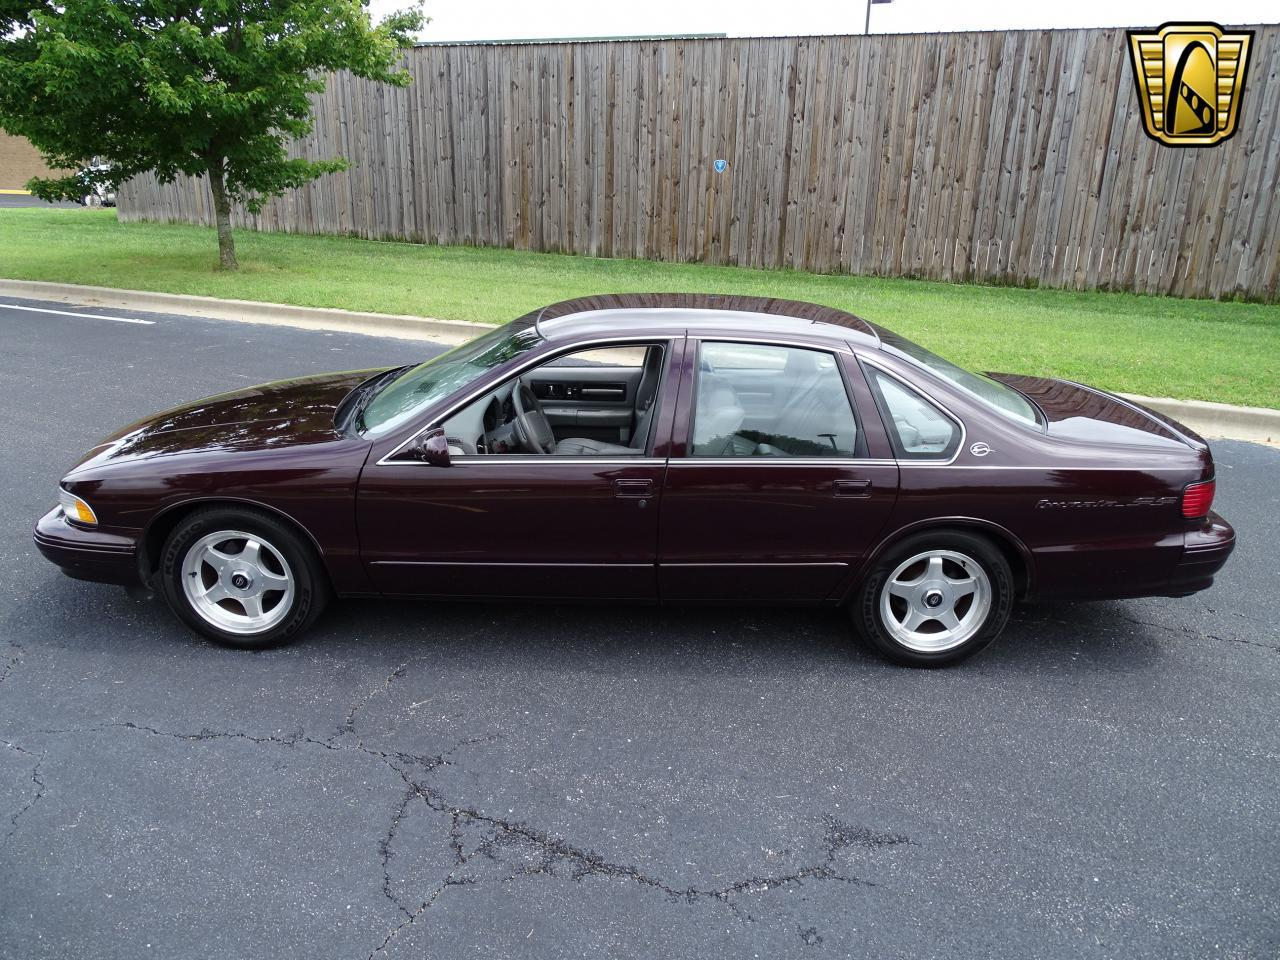 Large Picture of '96 Chevrolet Impala located in Illinois - $19,000.00 - QB5K